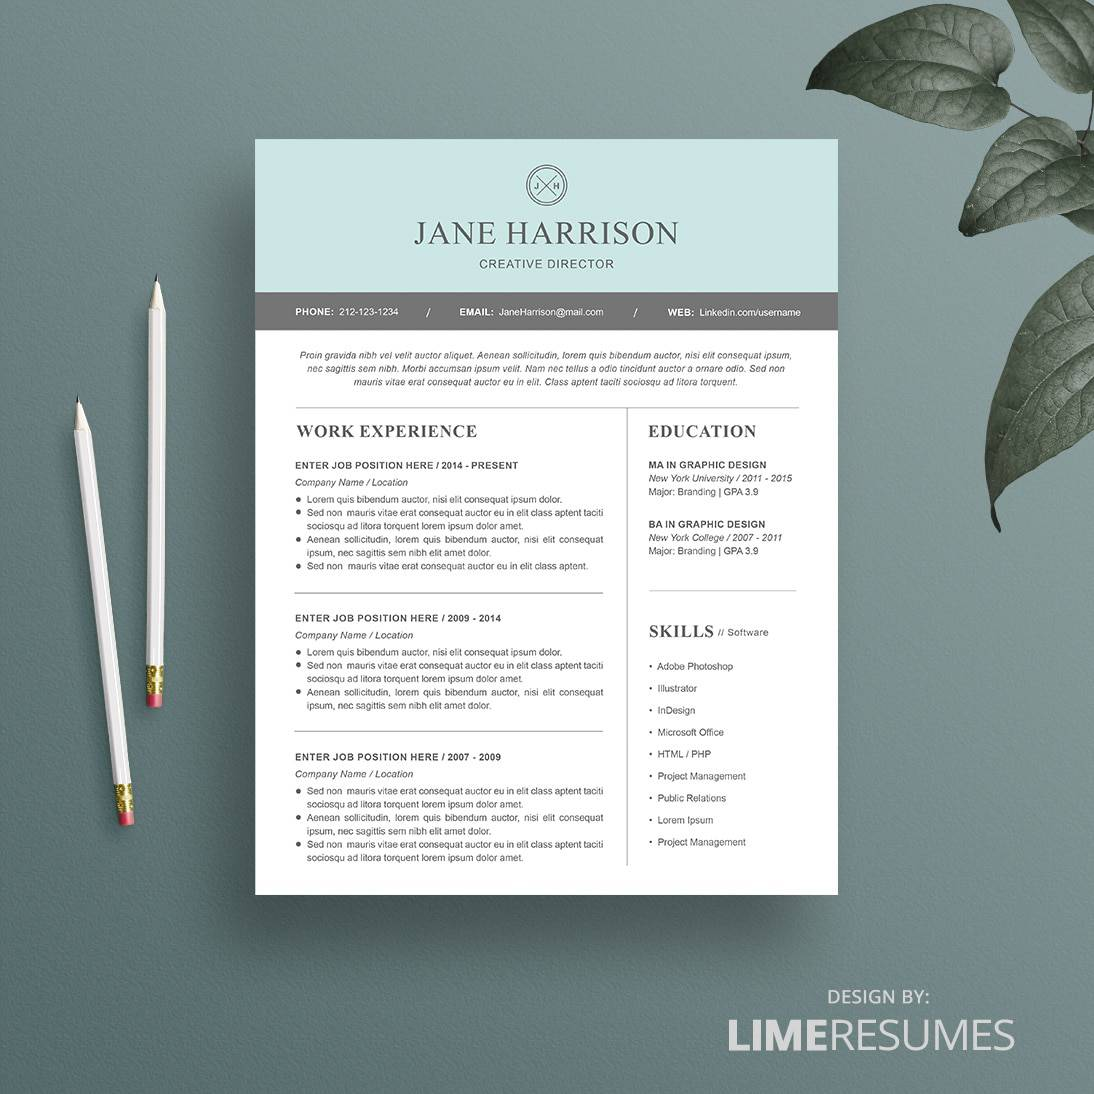 resume format template word 2007 cover letter templates resume format template word 2007 microsoft office word 2007 resume templates modern resume template 2 page